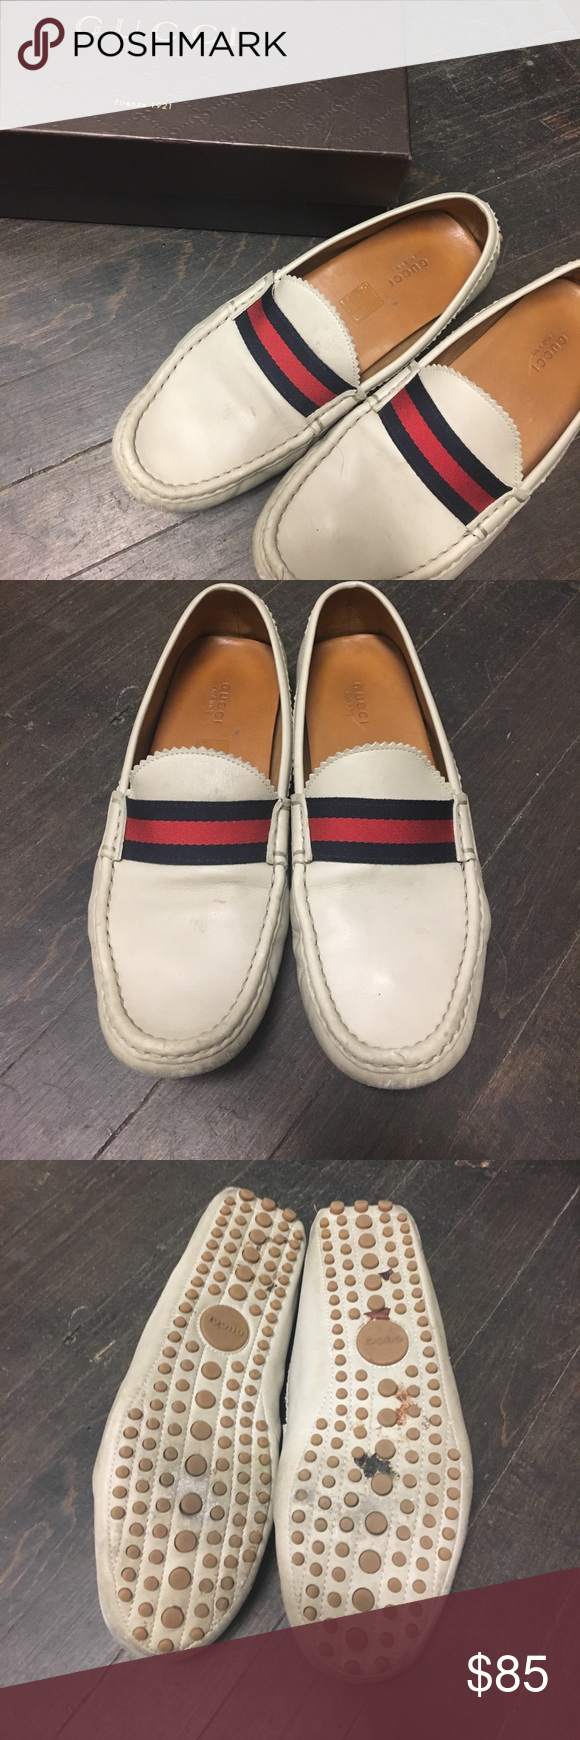 6f73367c206 AUTHENTIC Gucci Grey Loafers in 2018